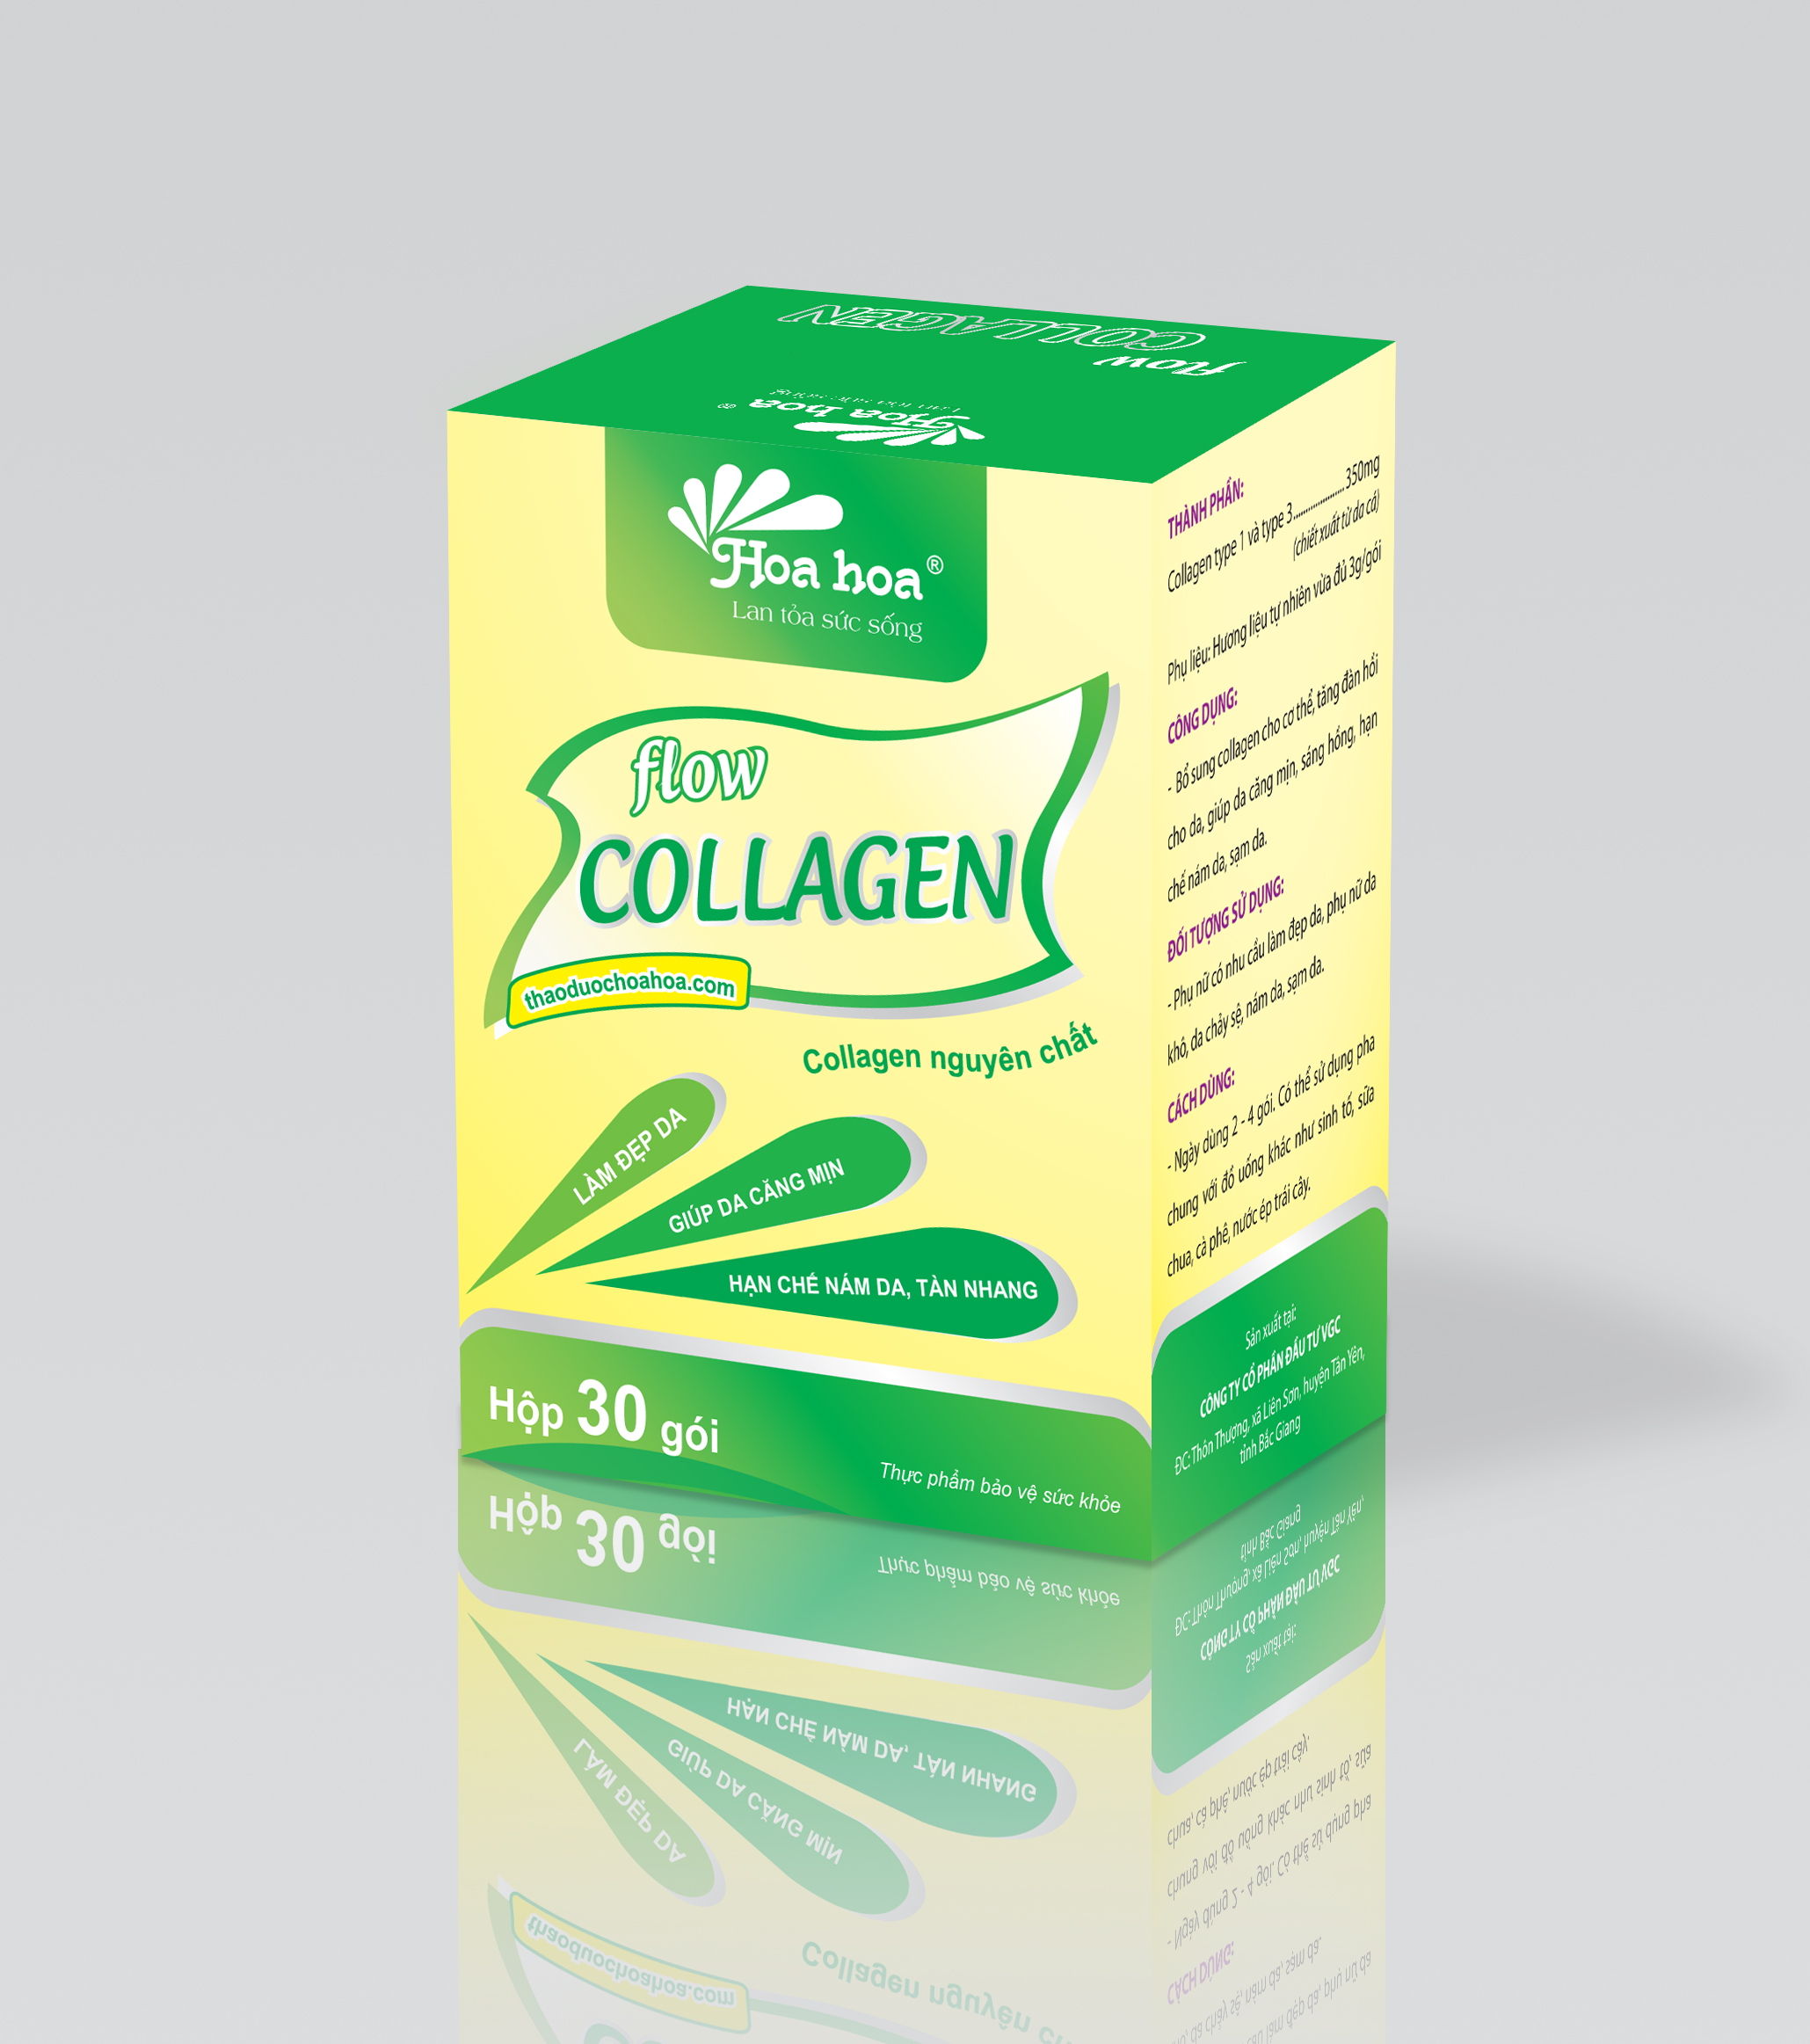 Flow Collagen